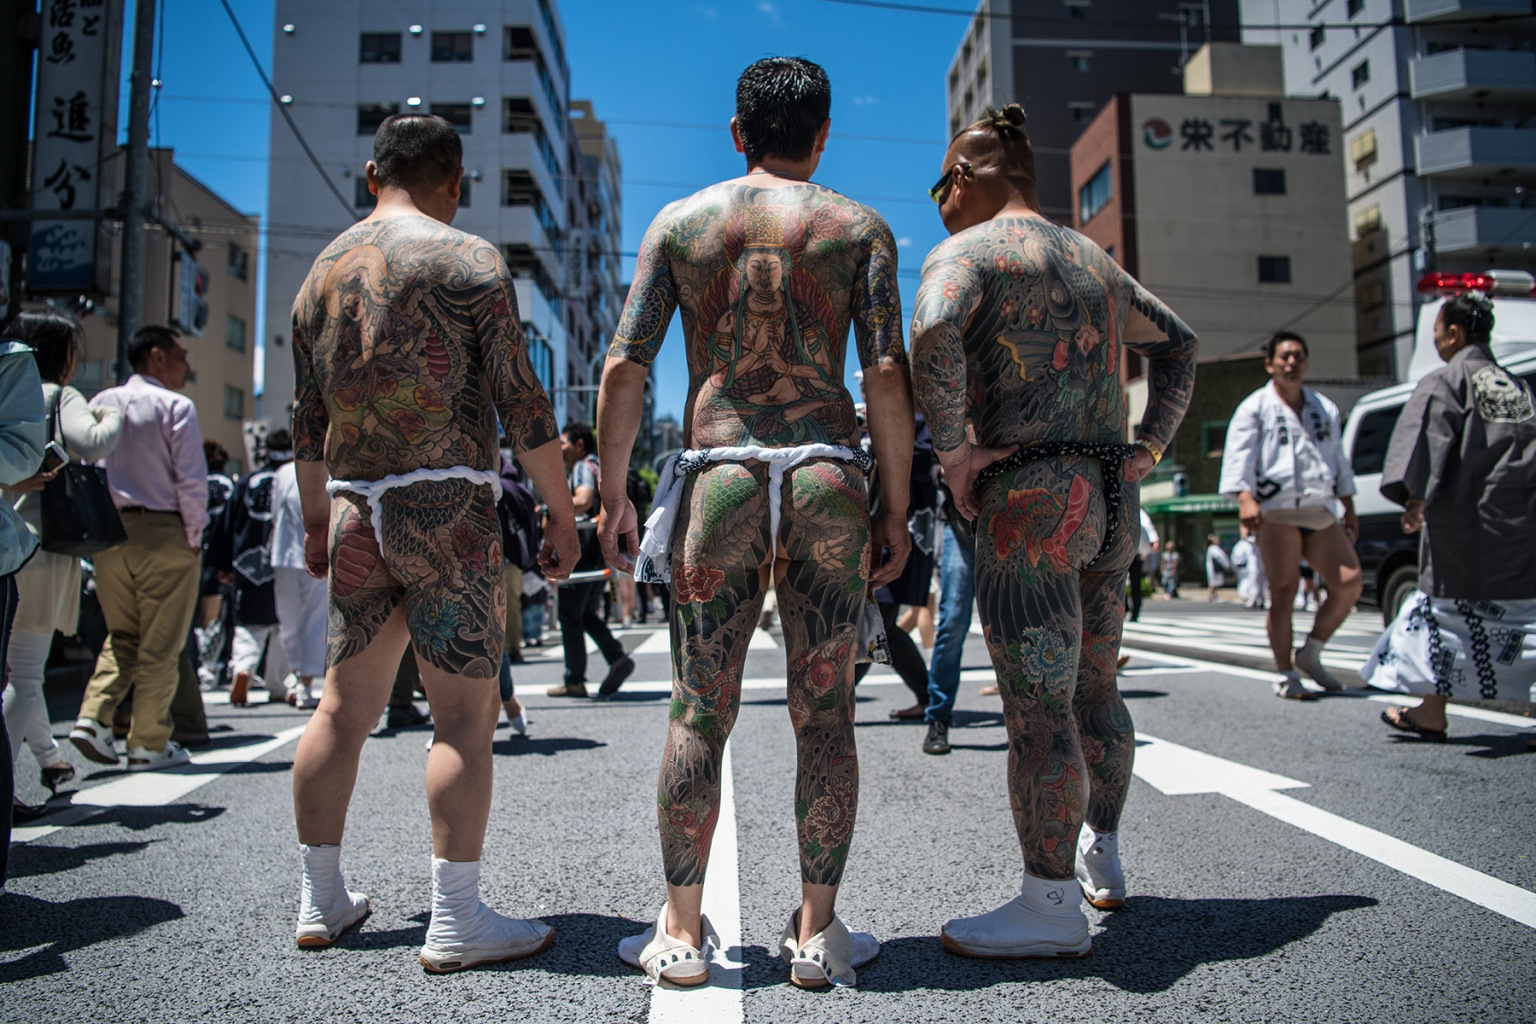 Heavily tattooed Japanese men chat in the street near Asakusa Temple on the final day of Sanja Festival on May 20 in Tokyo. The three-day festival starts with a grand parade with dancers in traditional costumes performing before portable shrines from local communities are carried to and from the temple. Carl Court/Getty Images